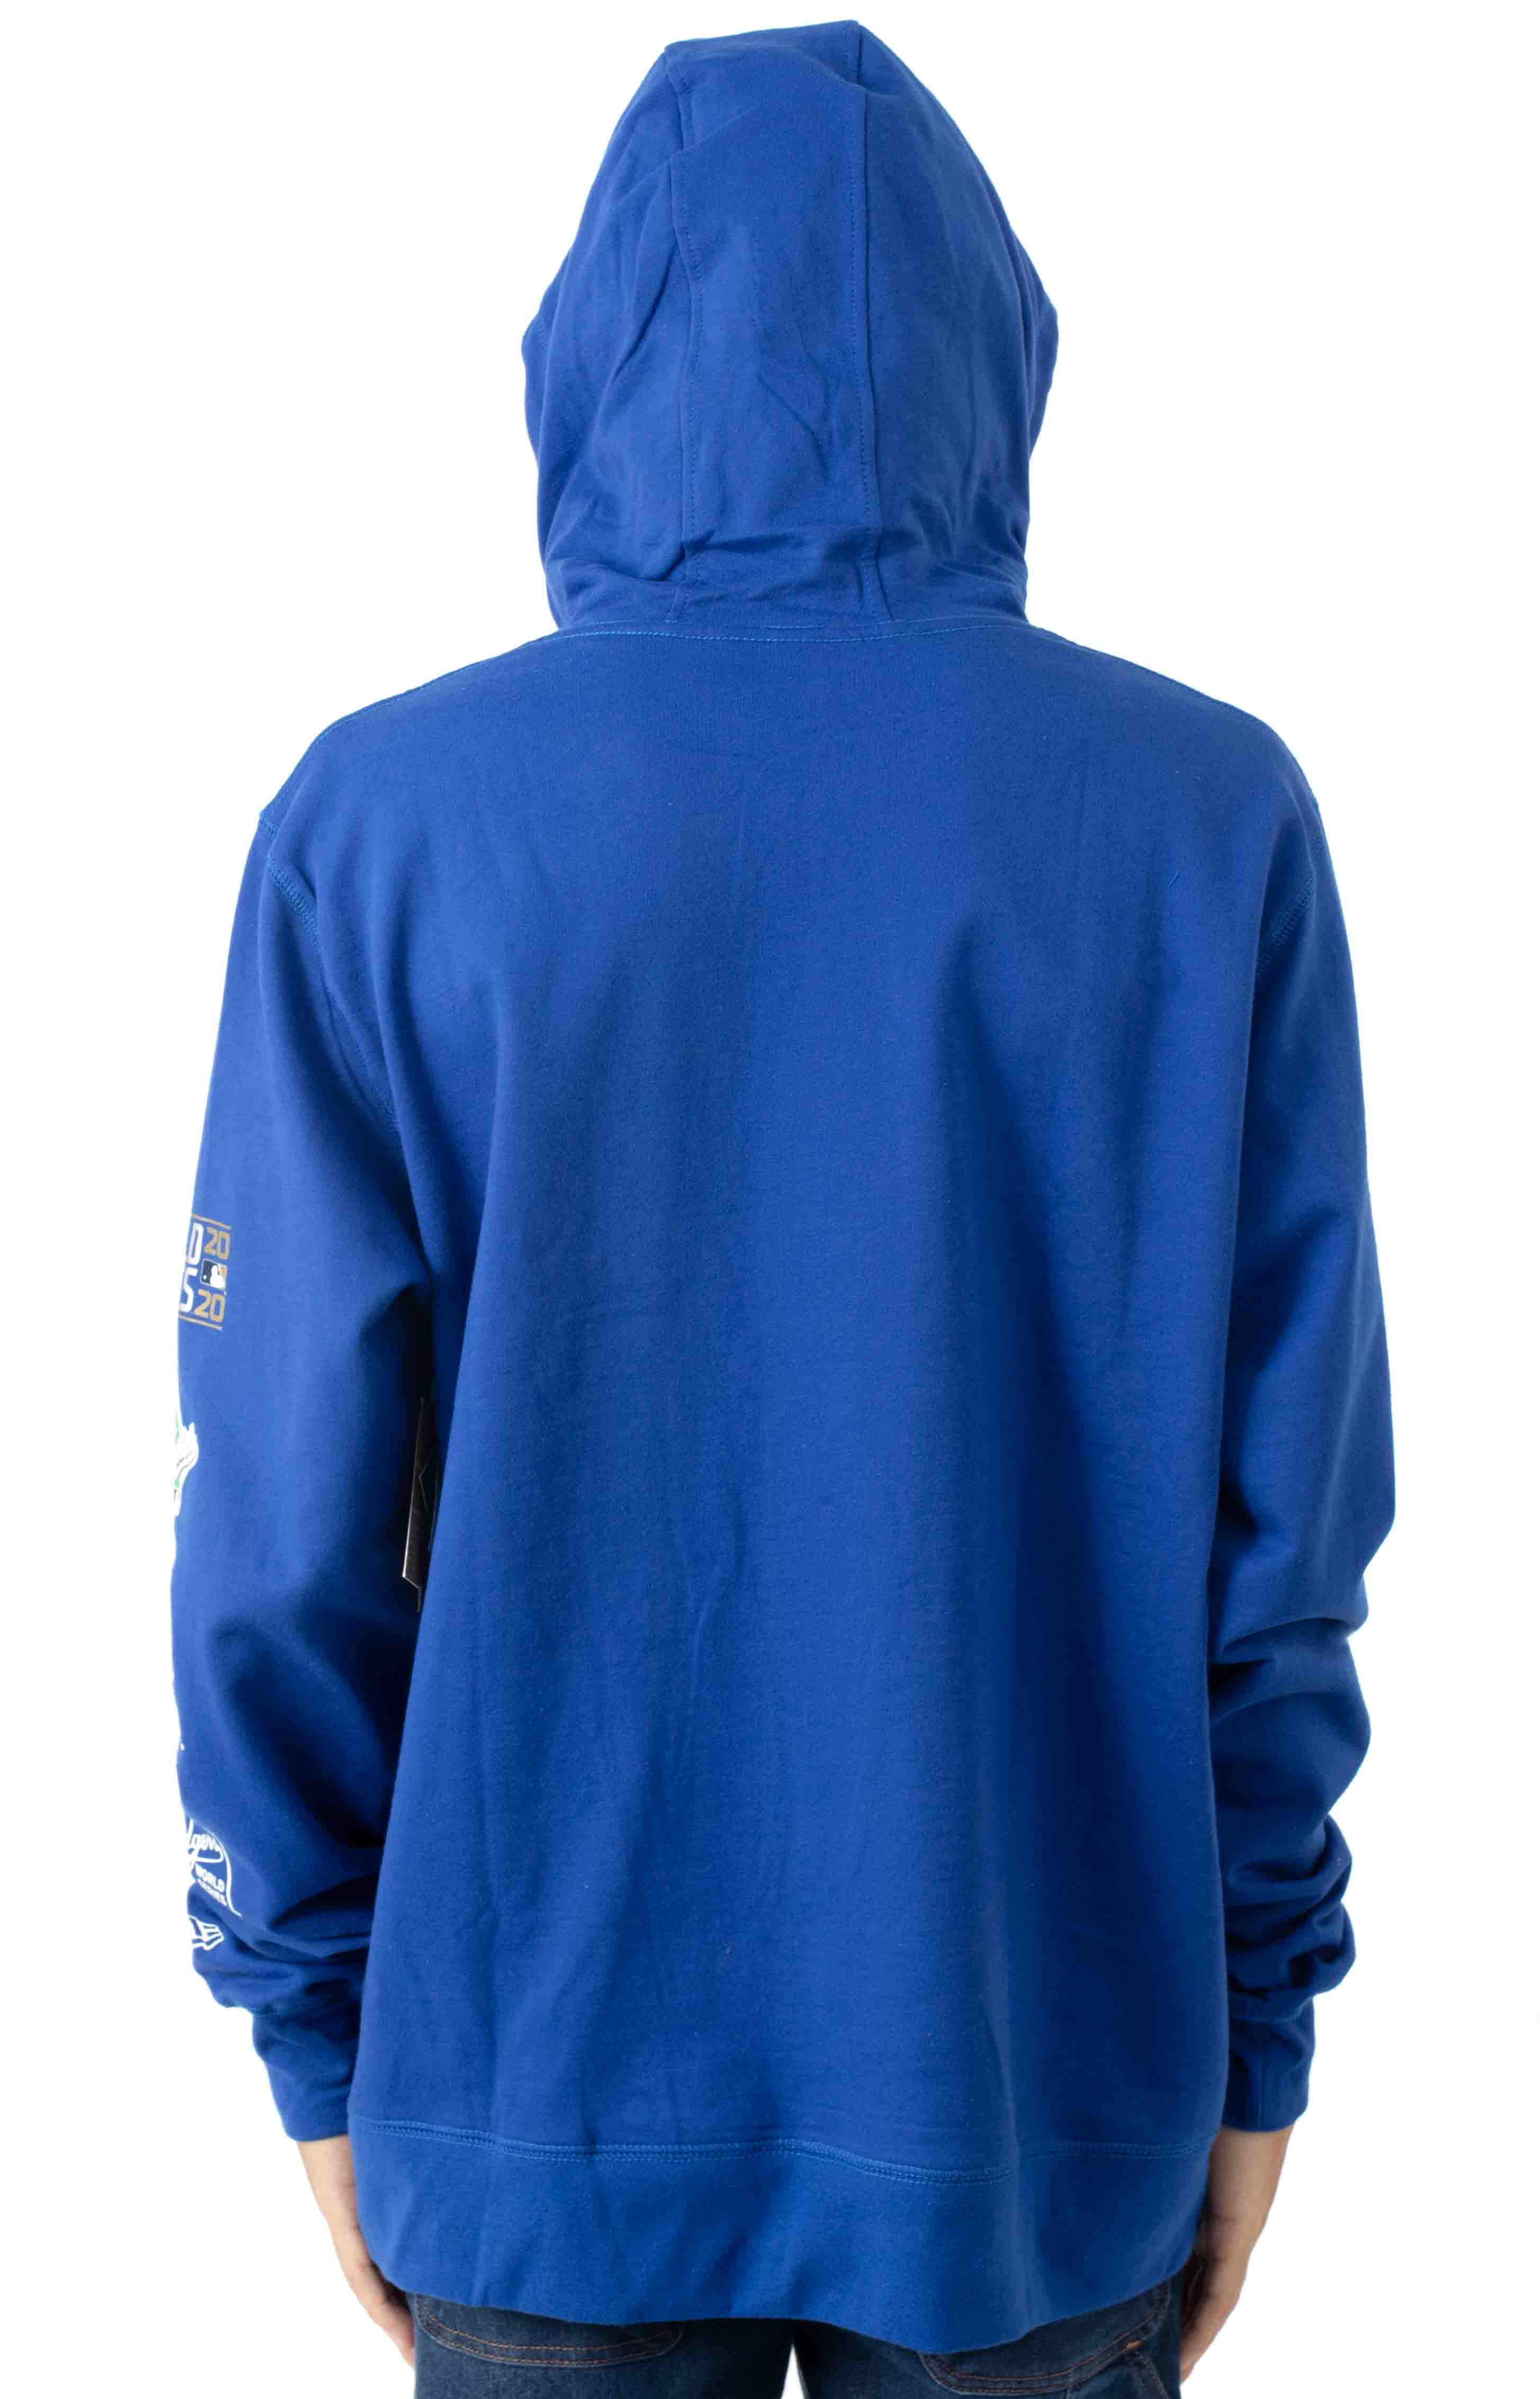 LA Dodgers World Chamoions Pullover Hoodie - Royal Blue  3